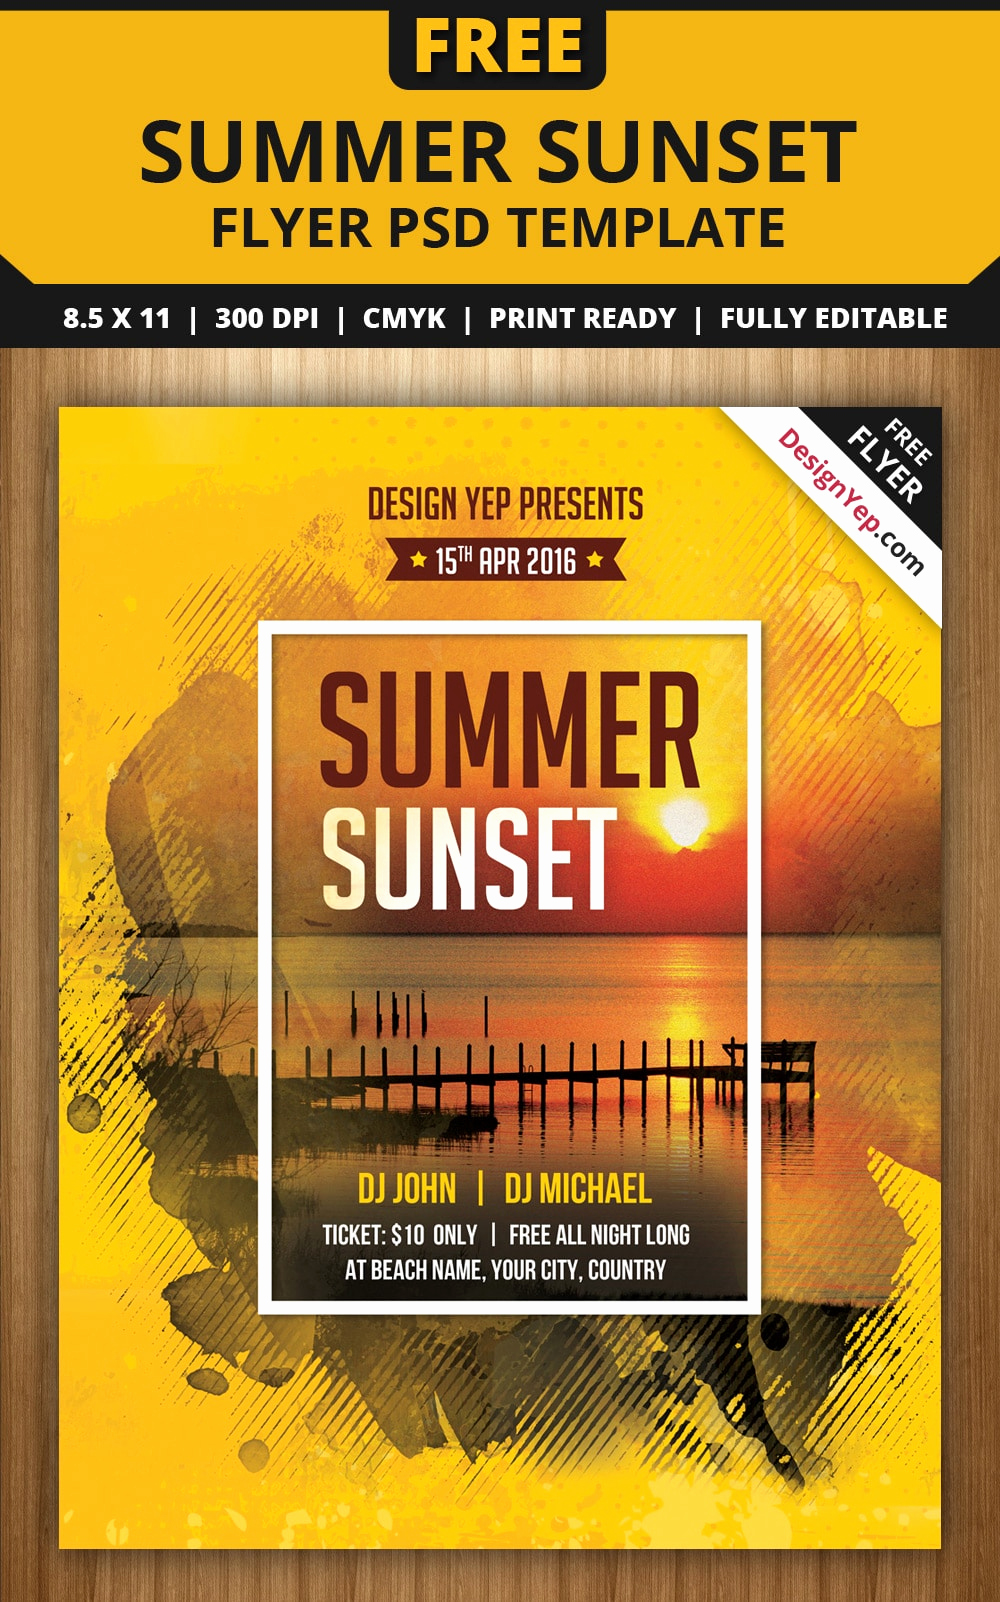 Free Party Flyer Templates Unique Free Flyer Templates Psd From 2016 Css Author